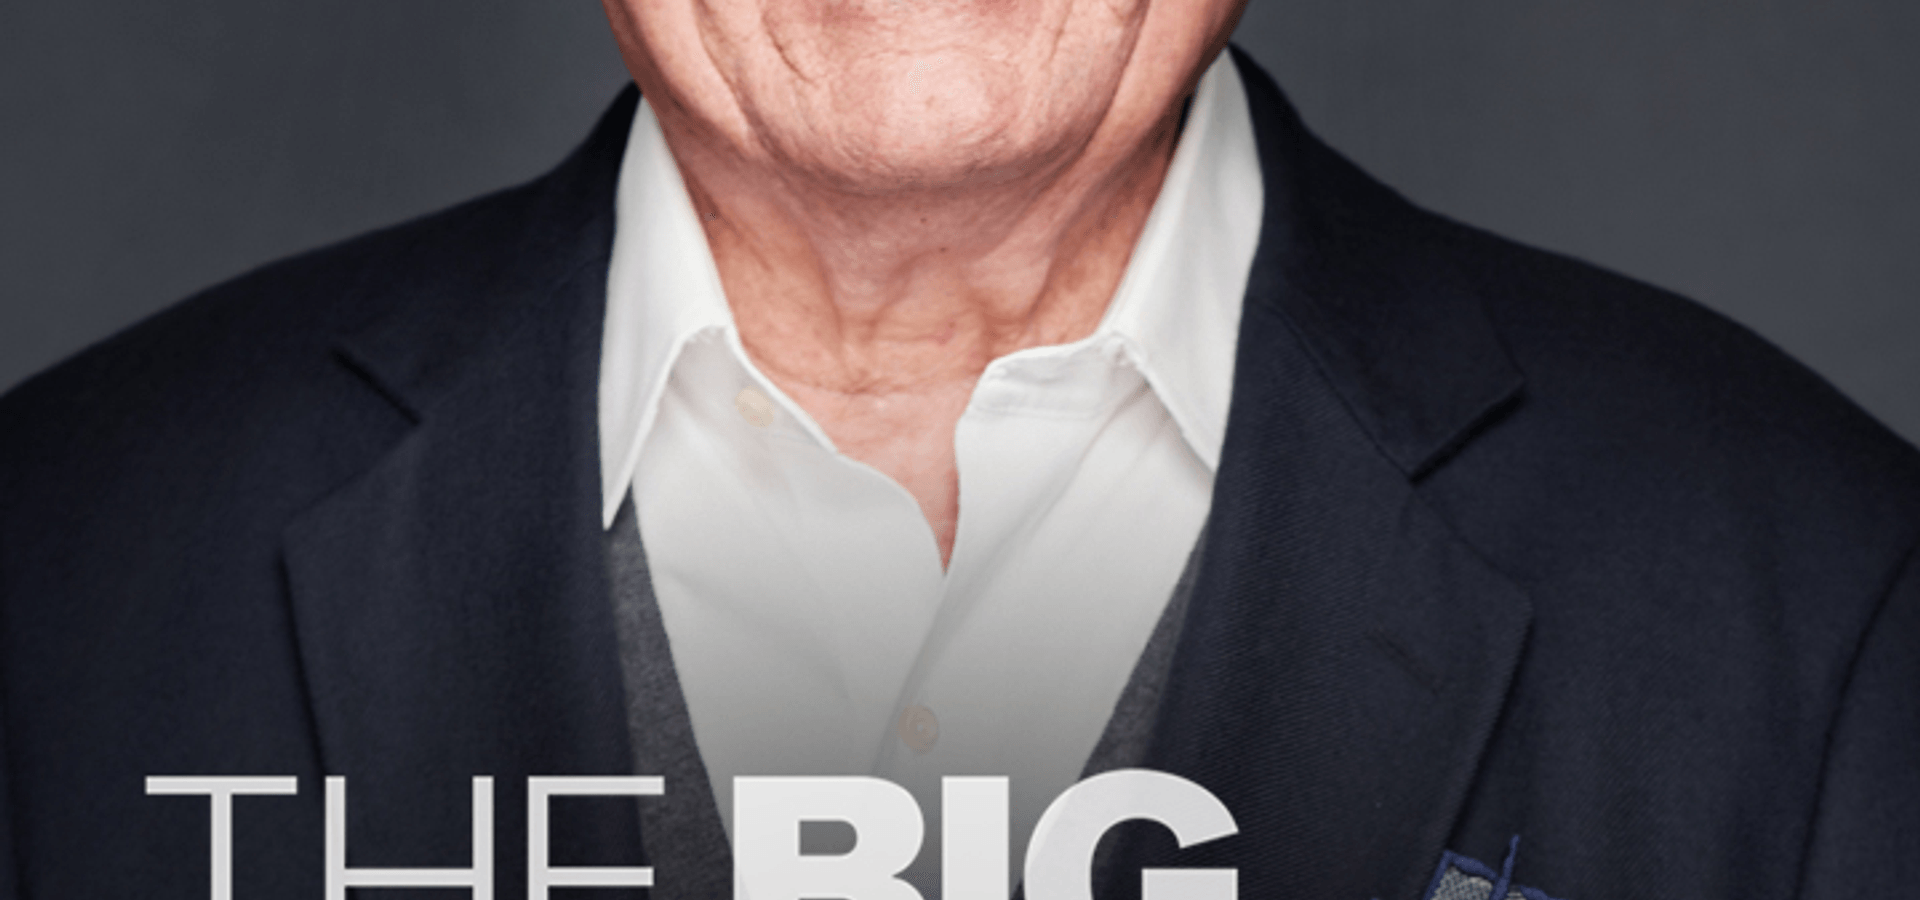 The Big Interview with Dan Rather Season 3